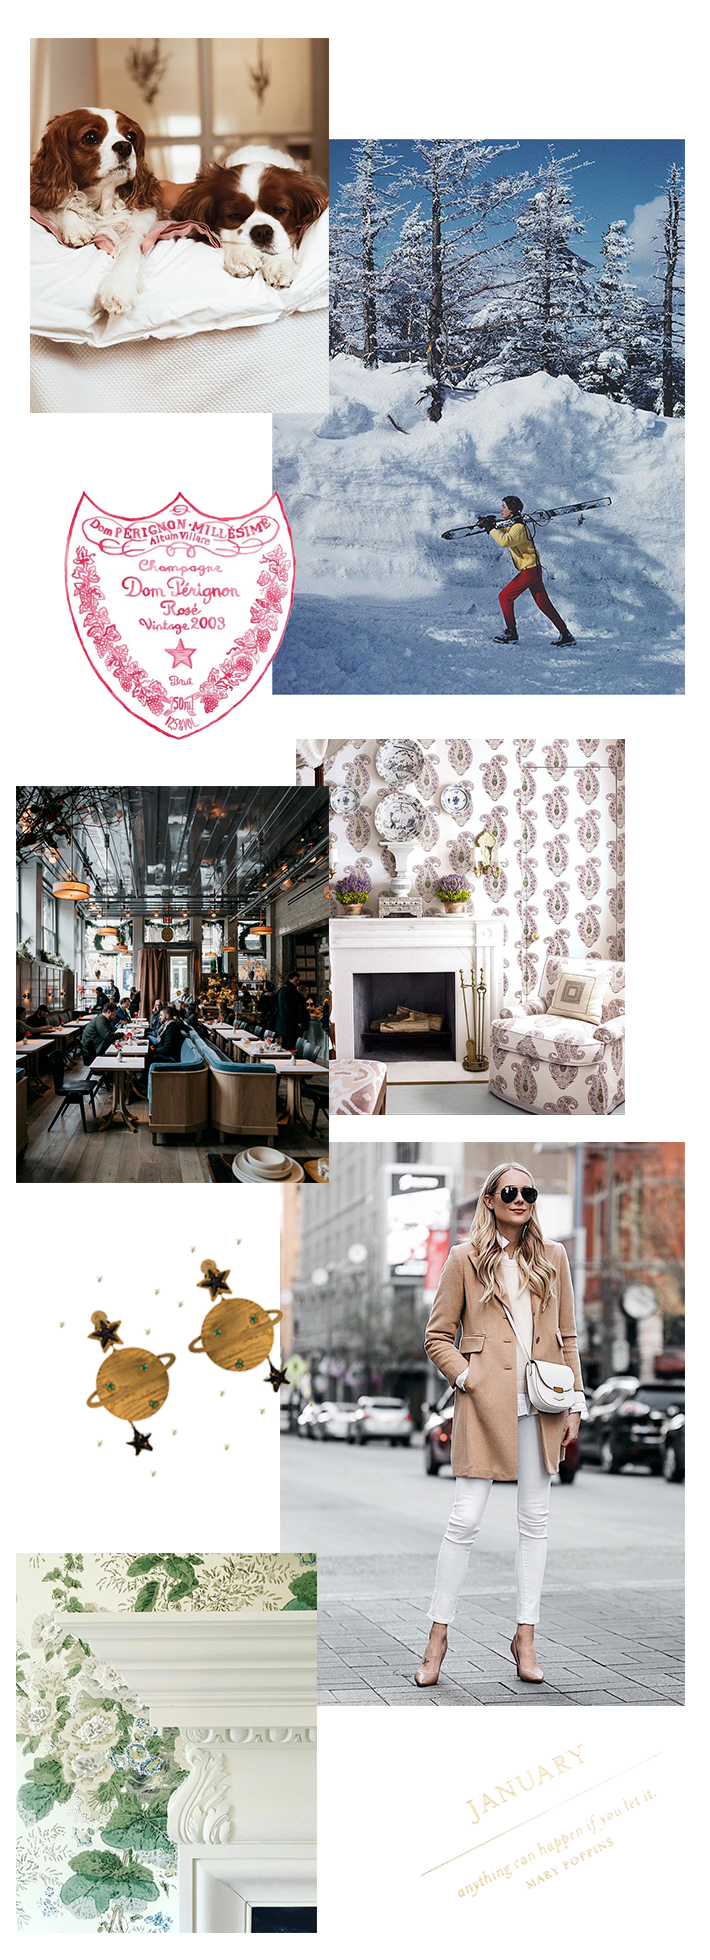 January_Lookbook_Snow_Style_Interiors